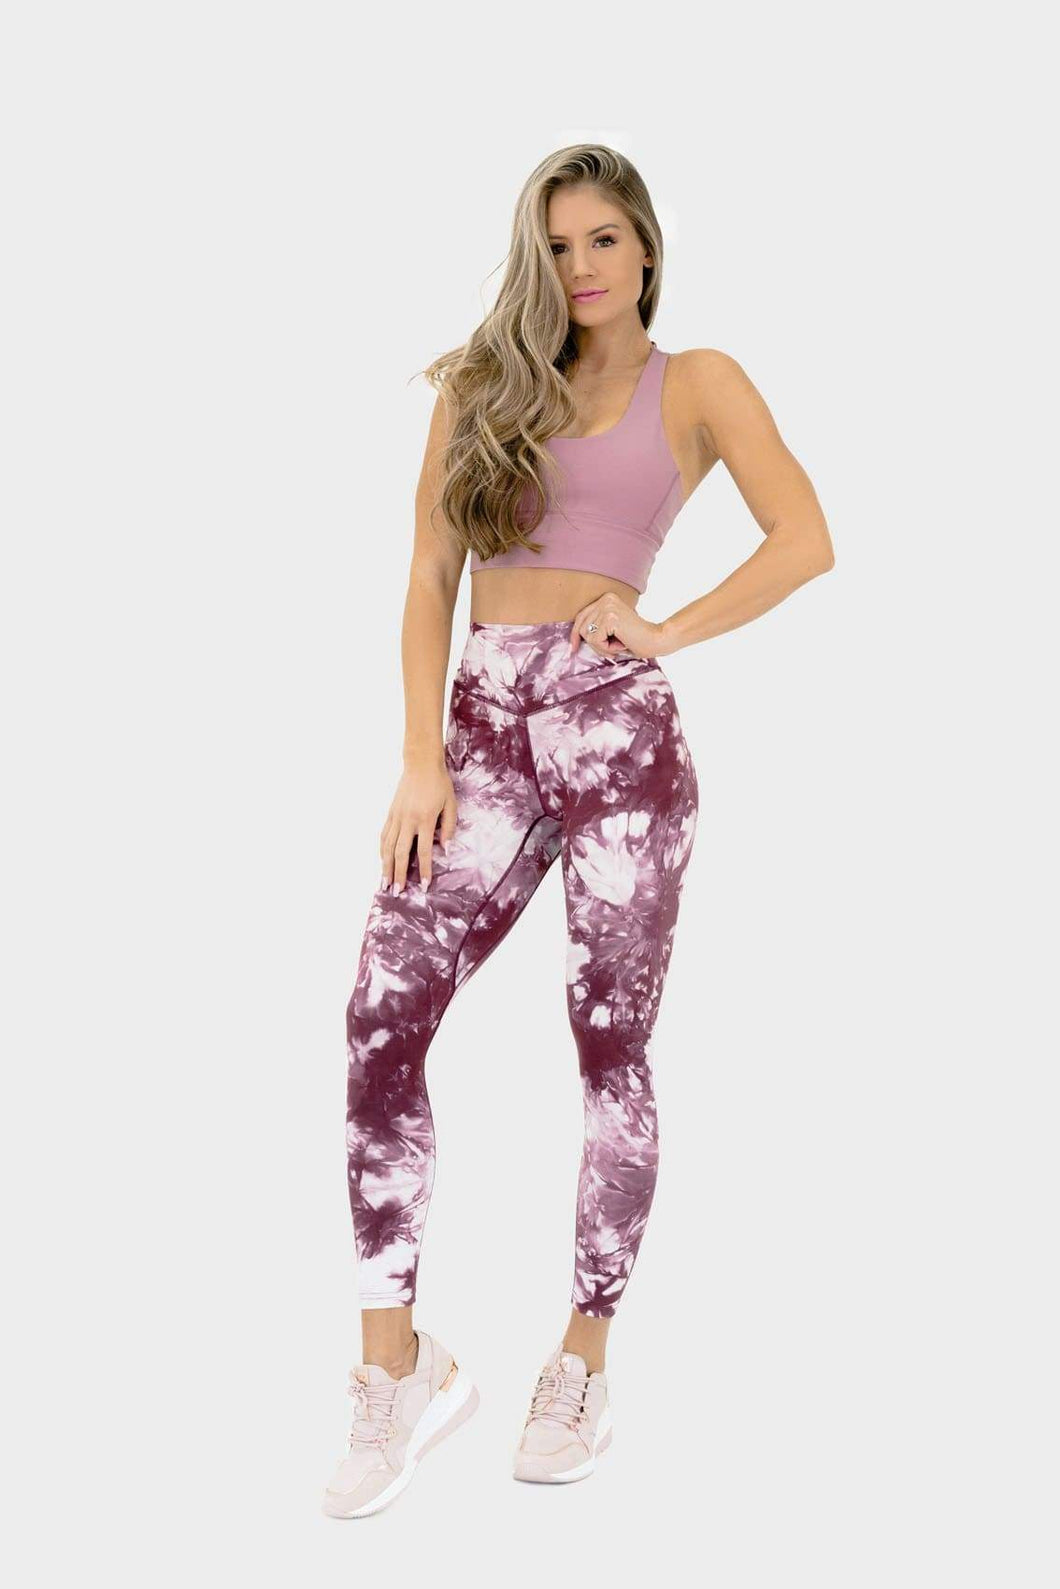 Balance Athletica Bottoms The OG Pant - Tie Dye Intuition